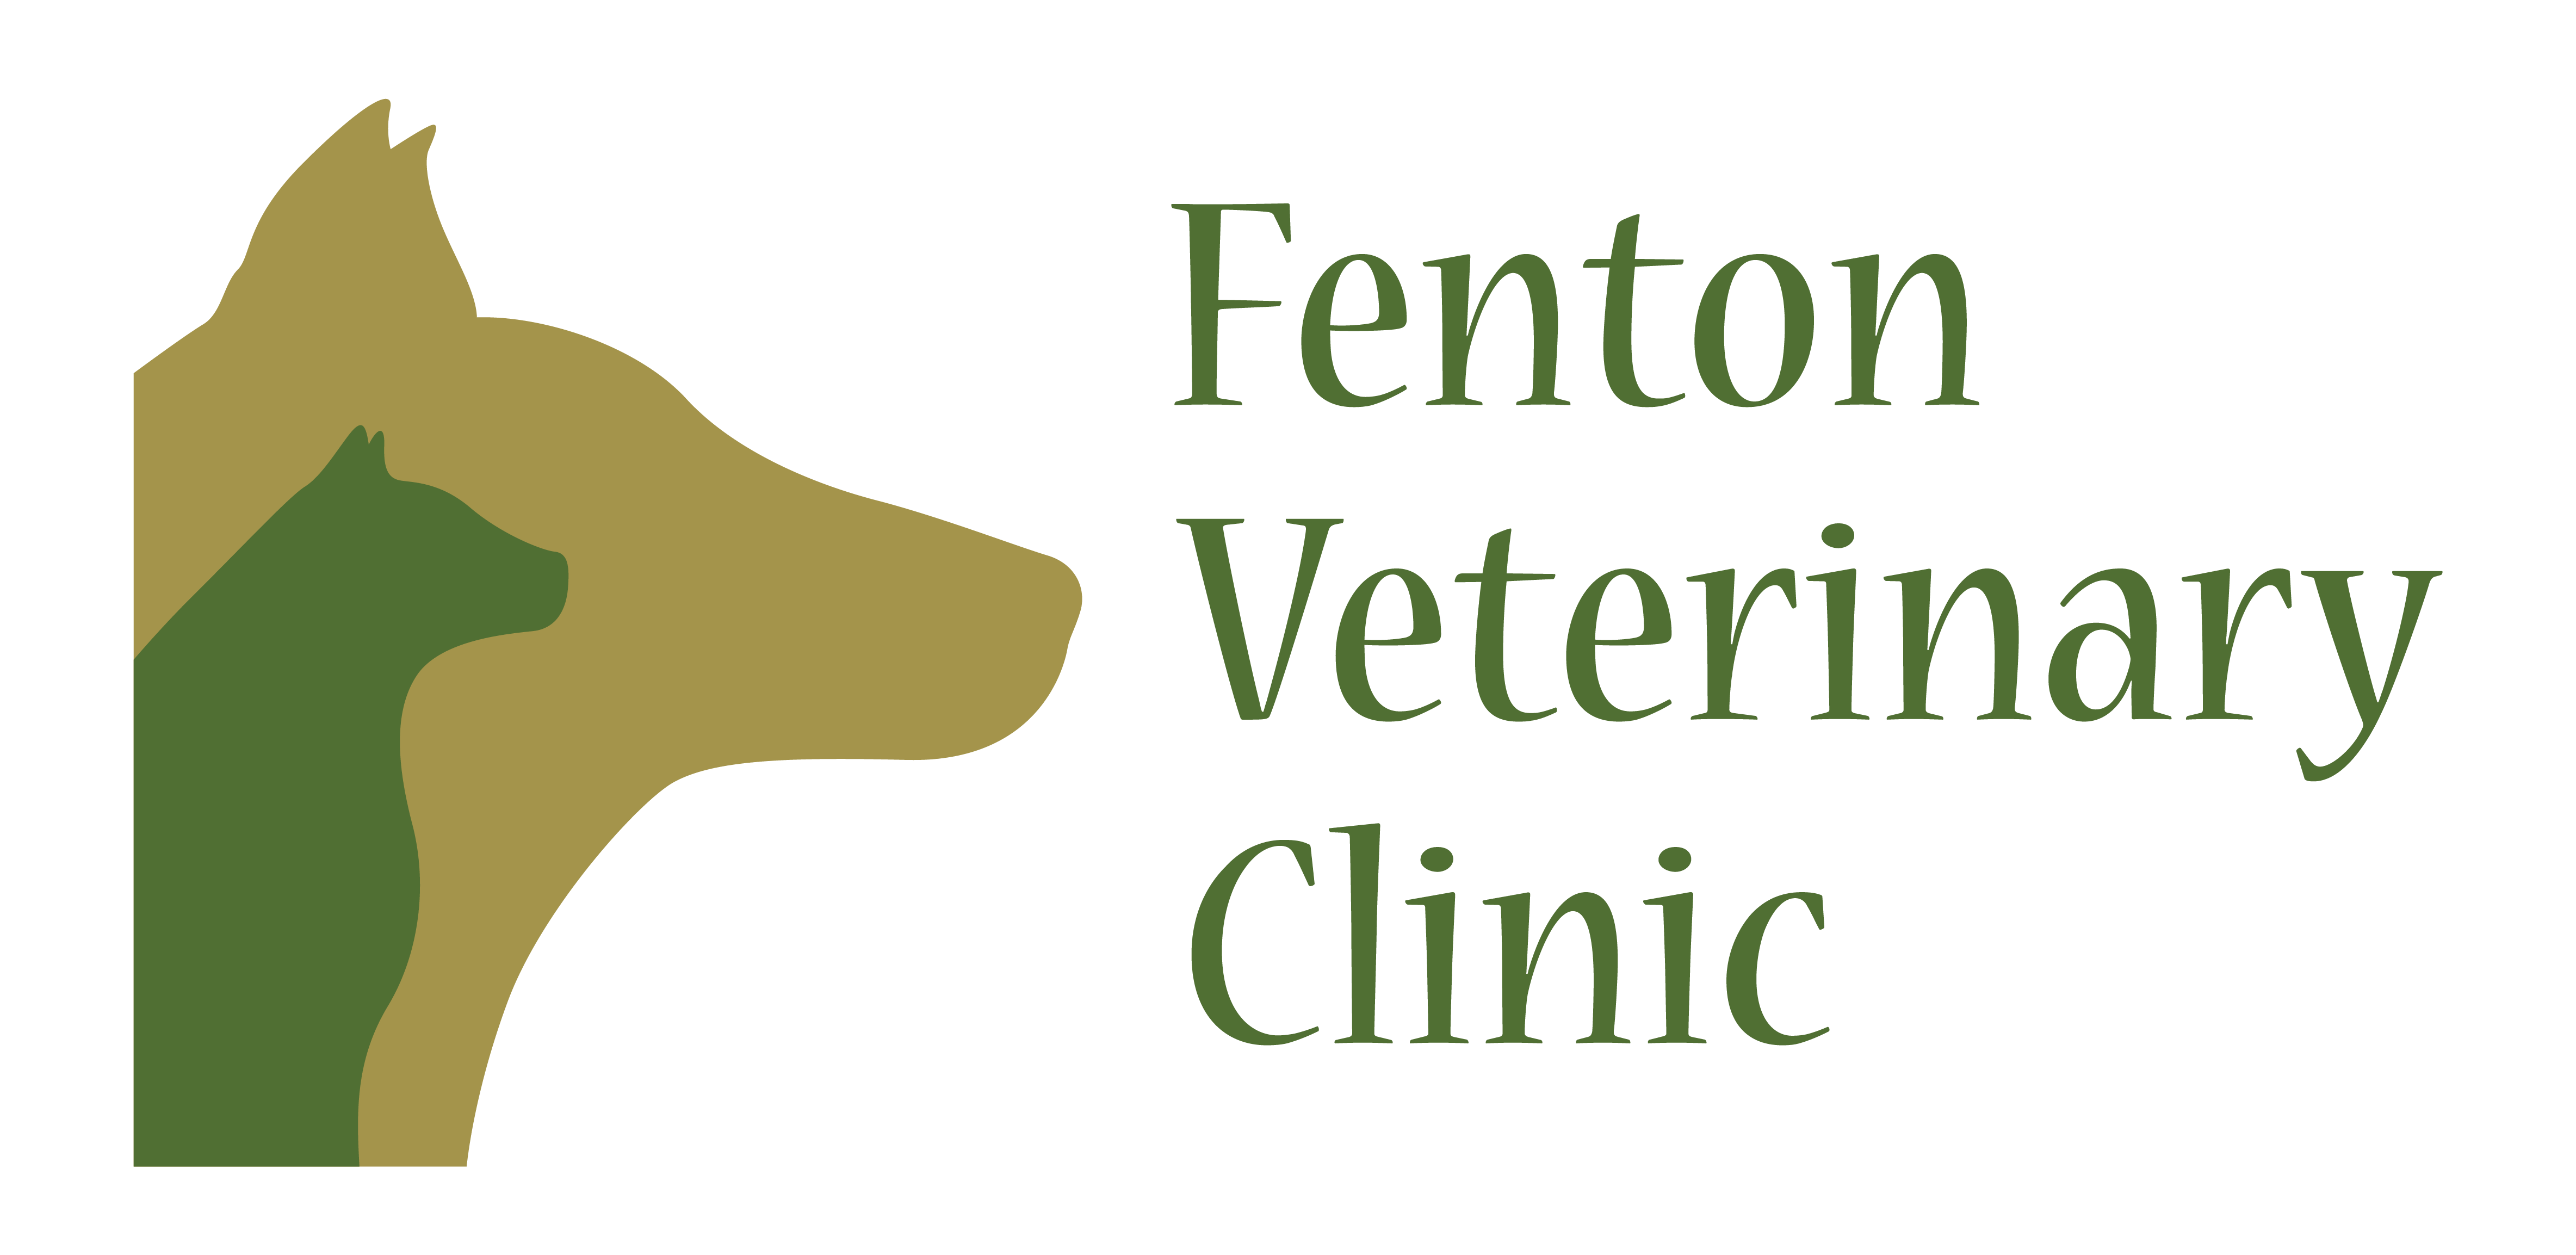 Fenton Veterinary Clinic